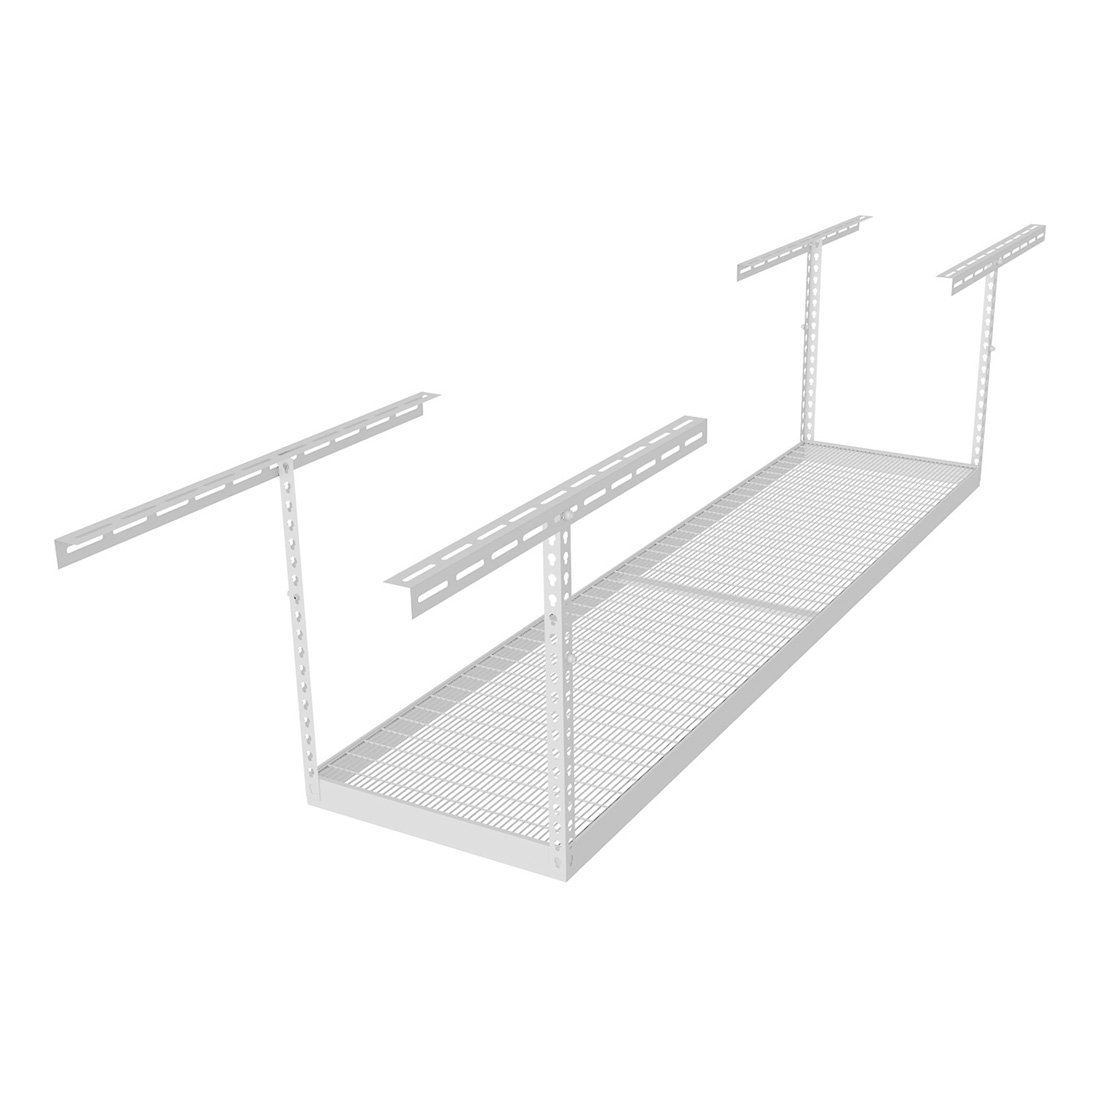 "MonsterRax (MR-2x8-W Pack 18) 2'x8' Overhead Storage Rack 18"" to 33"" Drop - White"